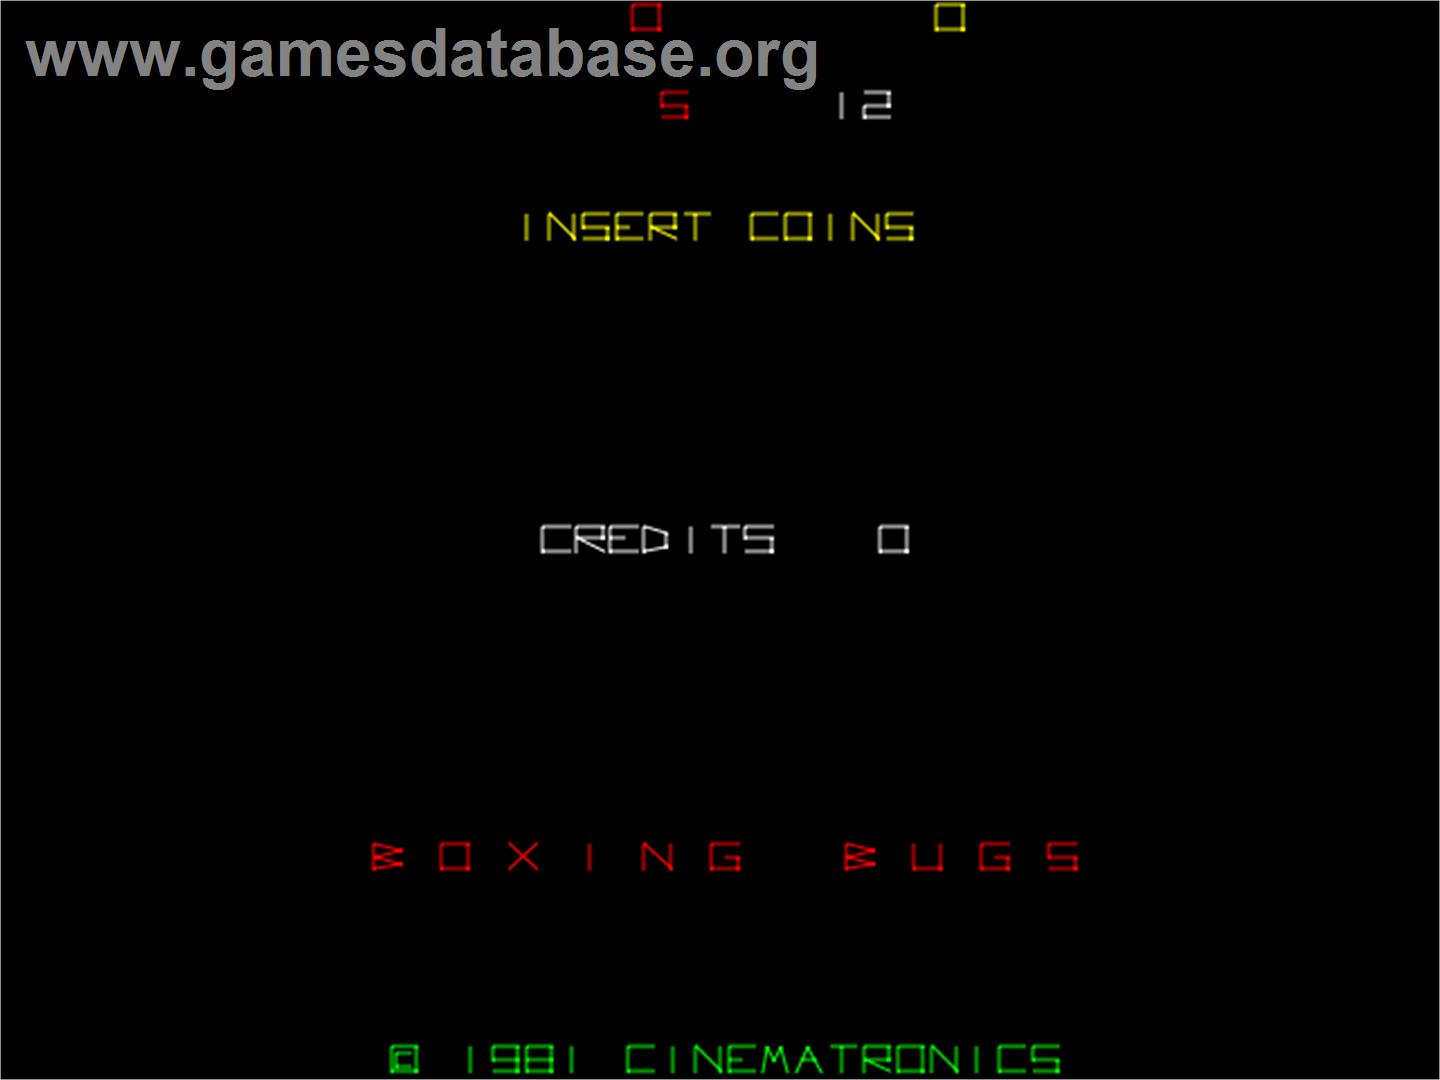 Boxing Bugs - Arcade - Artwork - Title Screen